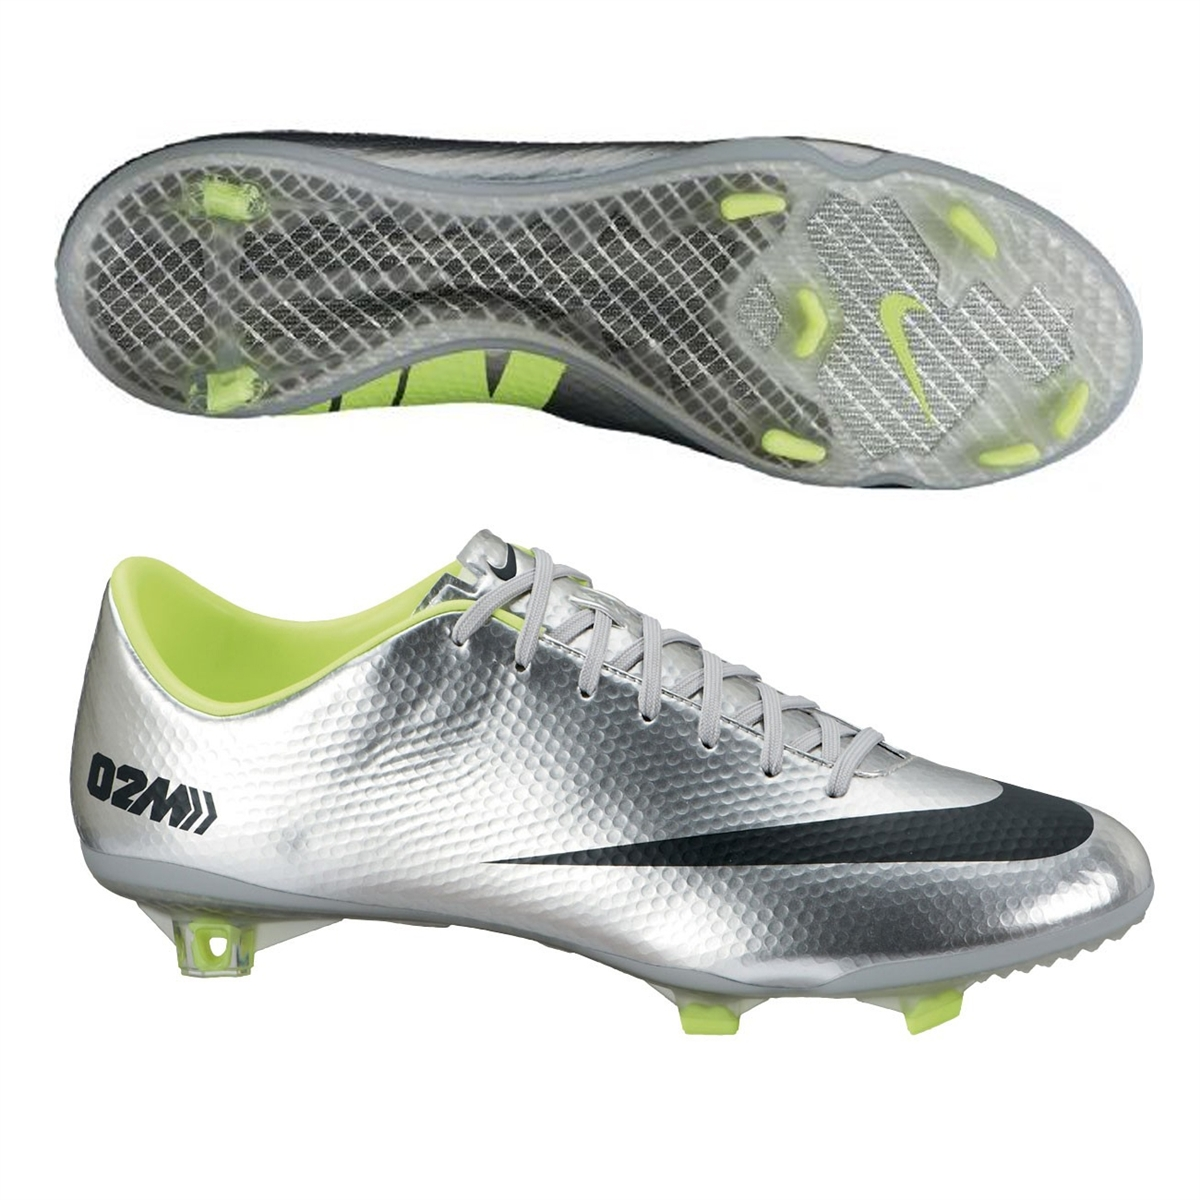 Puma Indoor Soccer Shoes Volt / White / Silver Size 9 New White / Volt / Silver